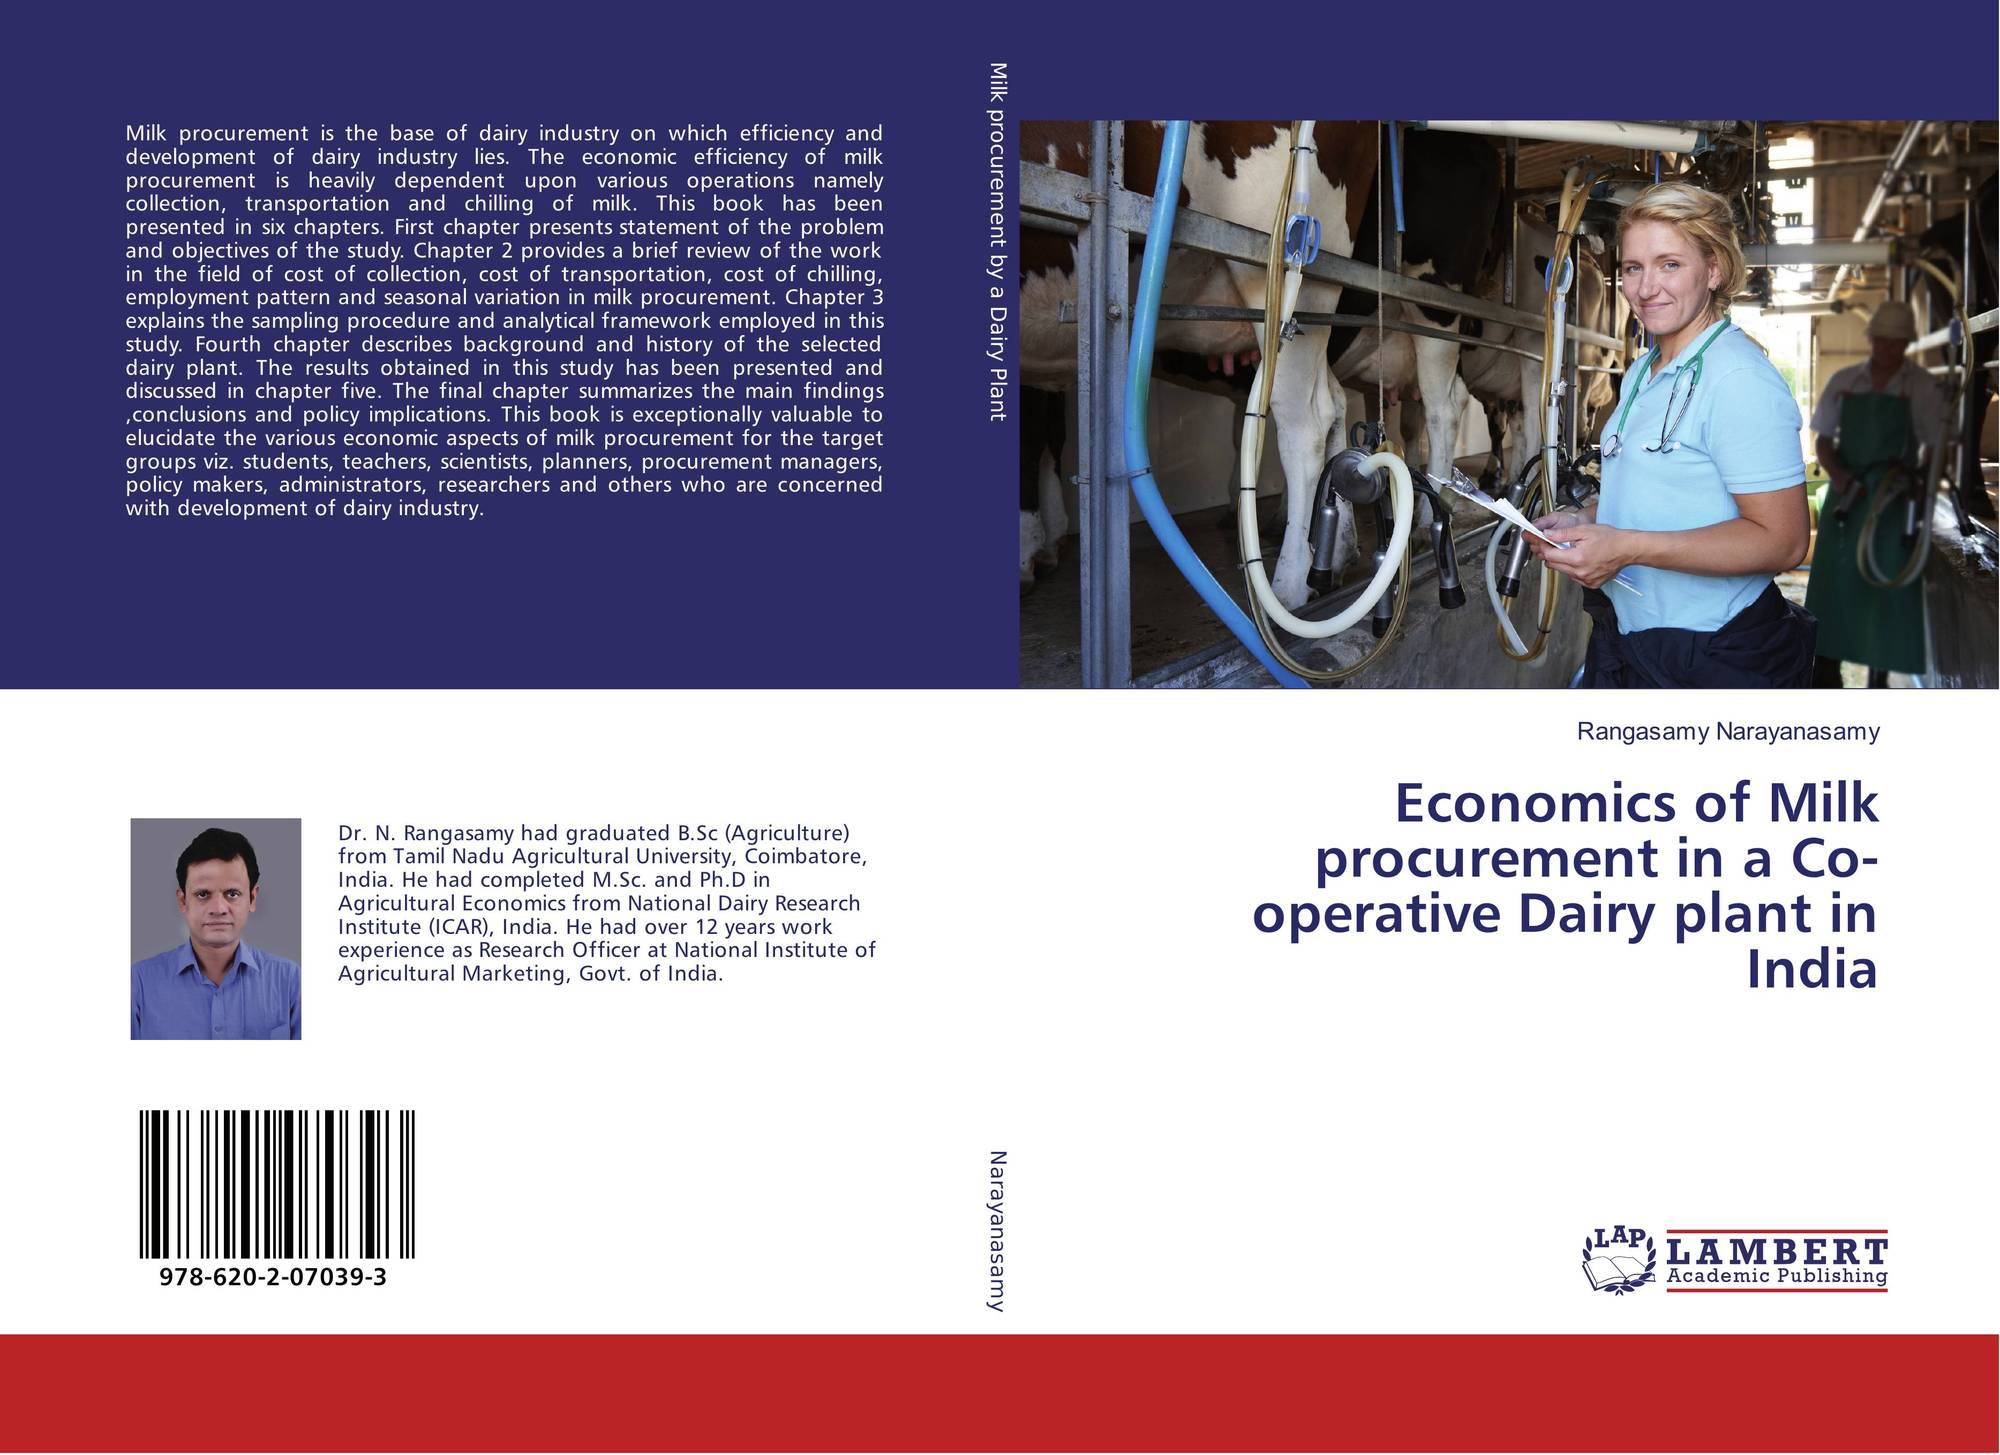 Economics of Milk procurement in a Co-operative Dairy plant